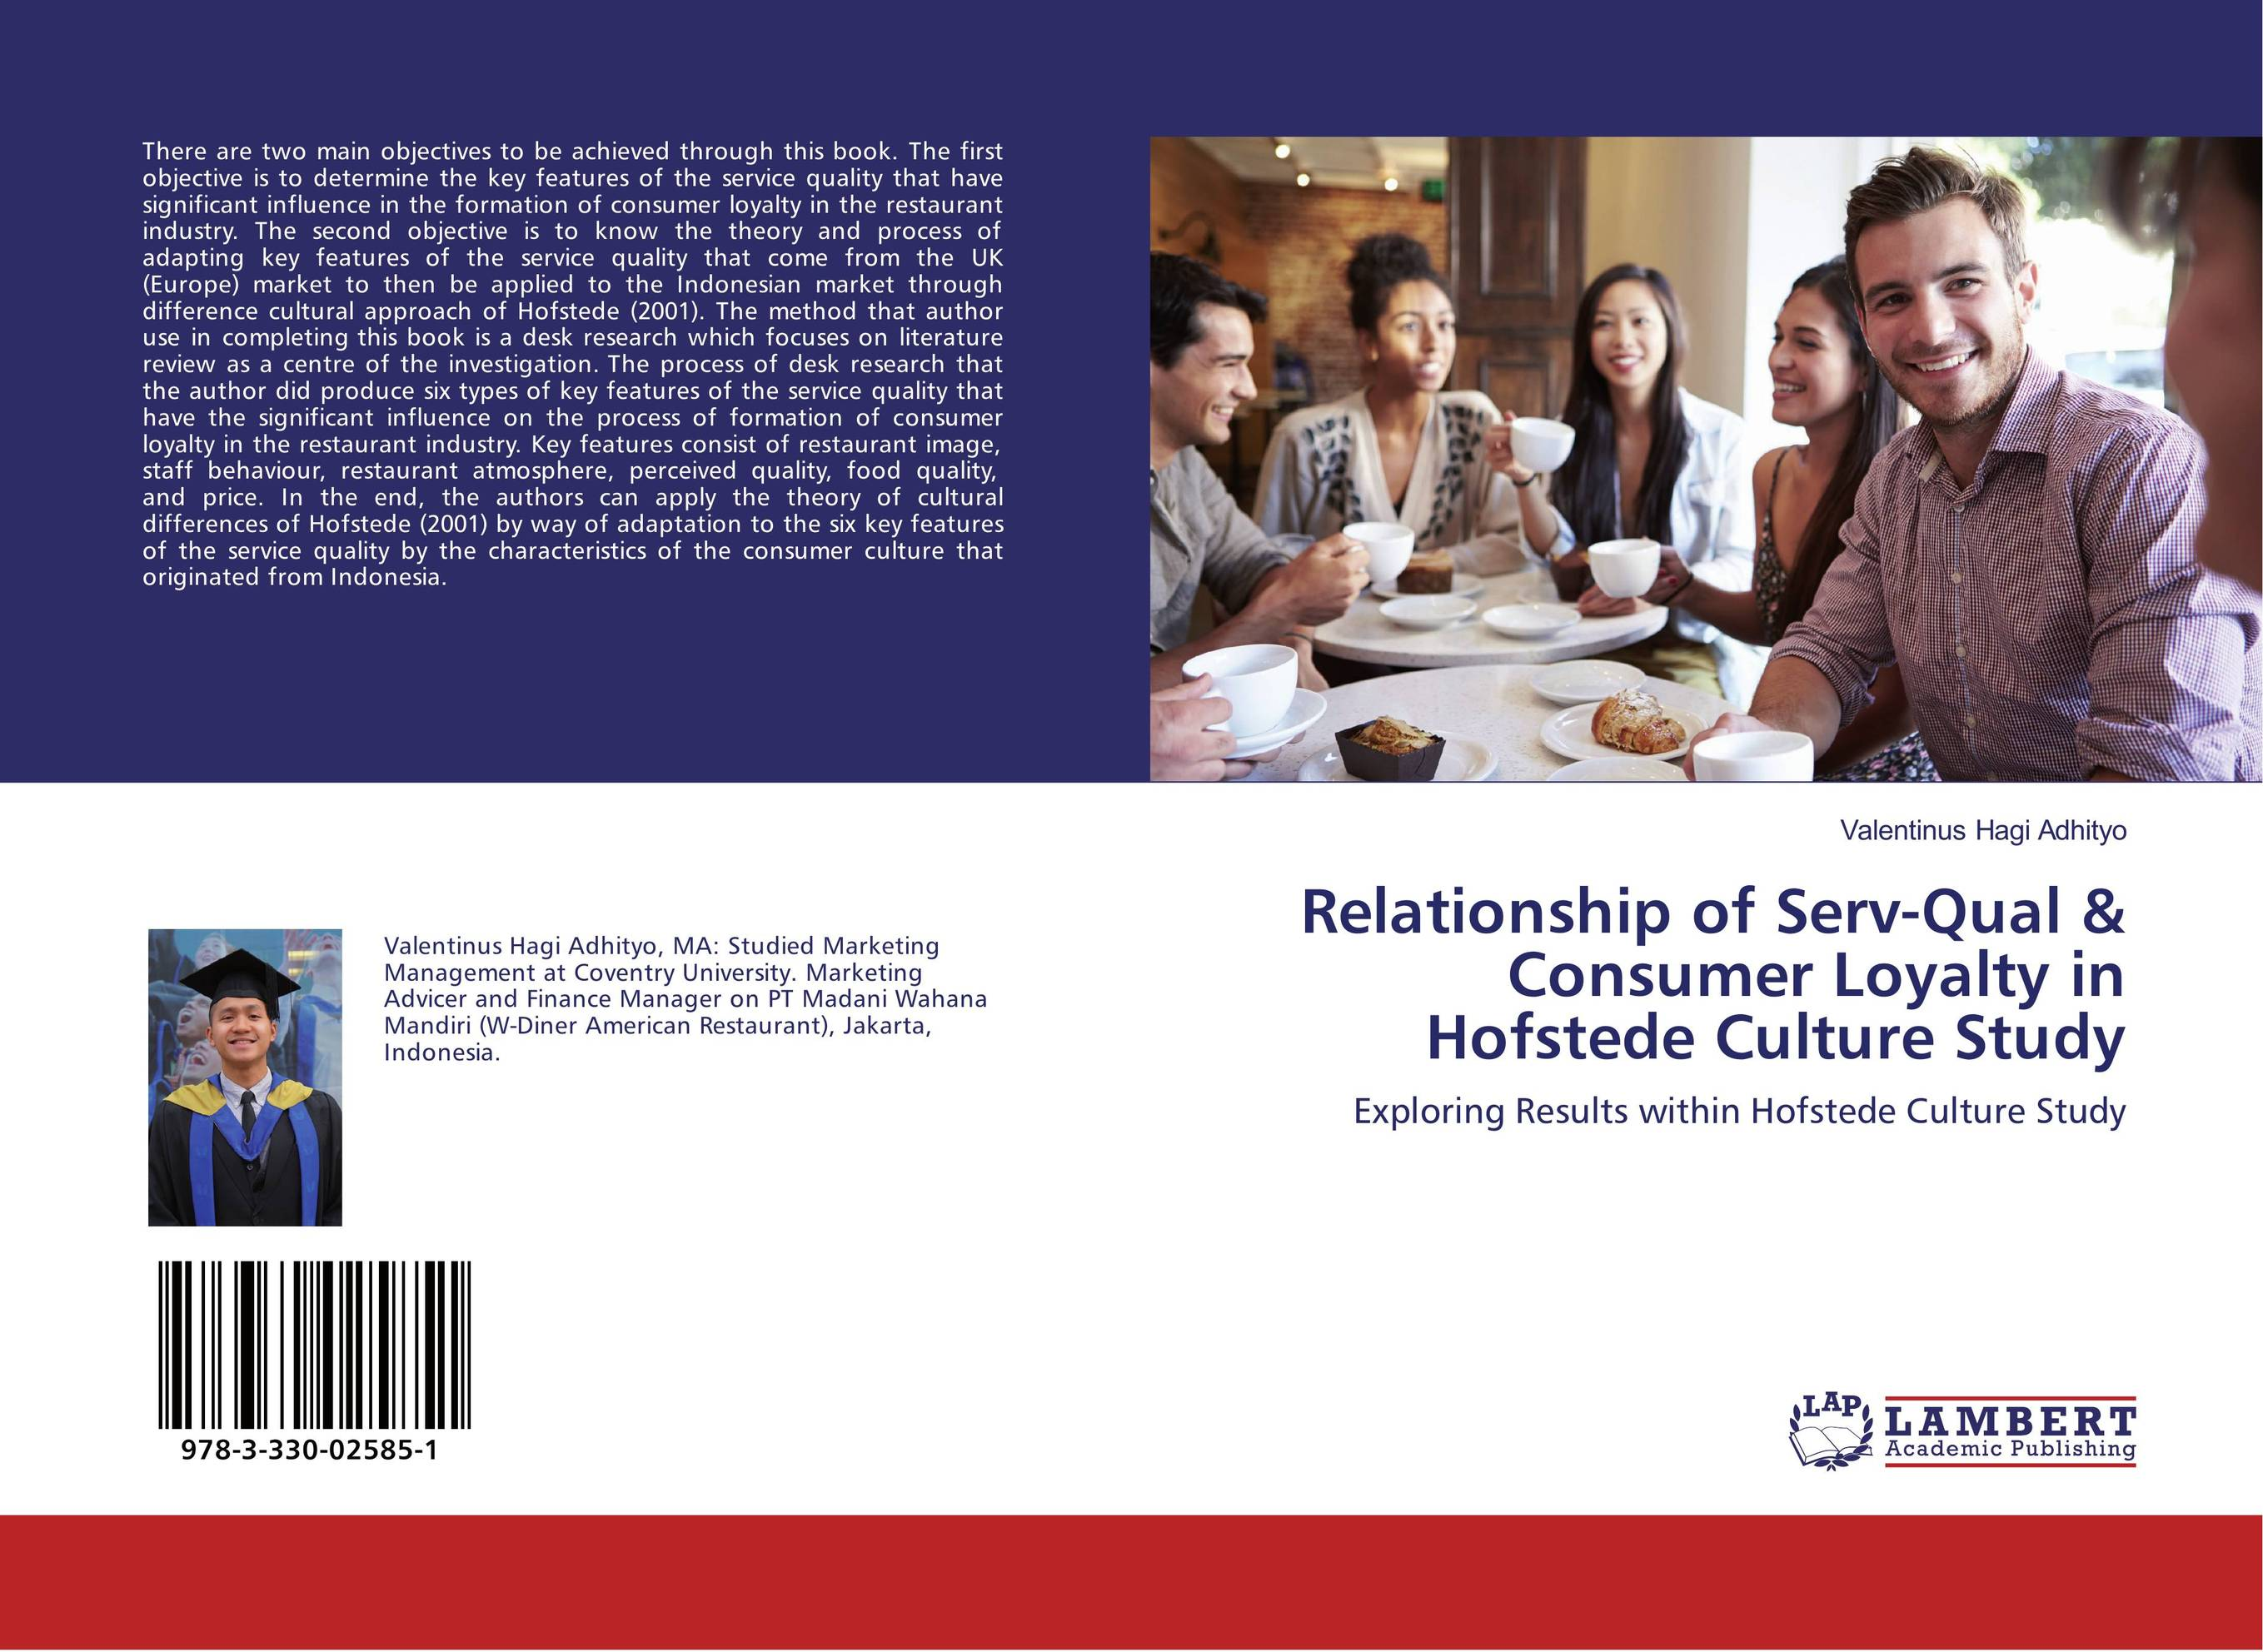 hofstede approach in colombia Hofstede's cultural dimensions hofstede's analysis suggests that in the central american countries of panama and you can evaluate your approach.